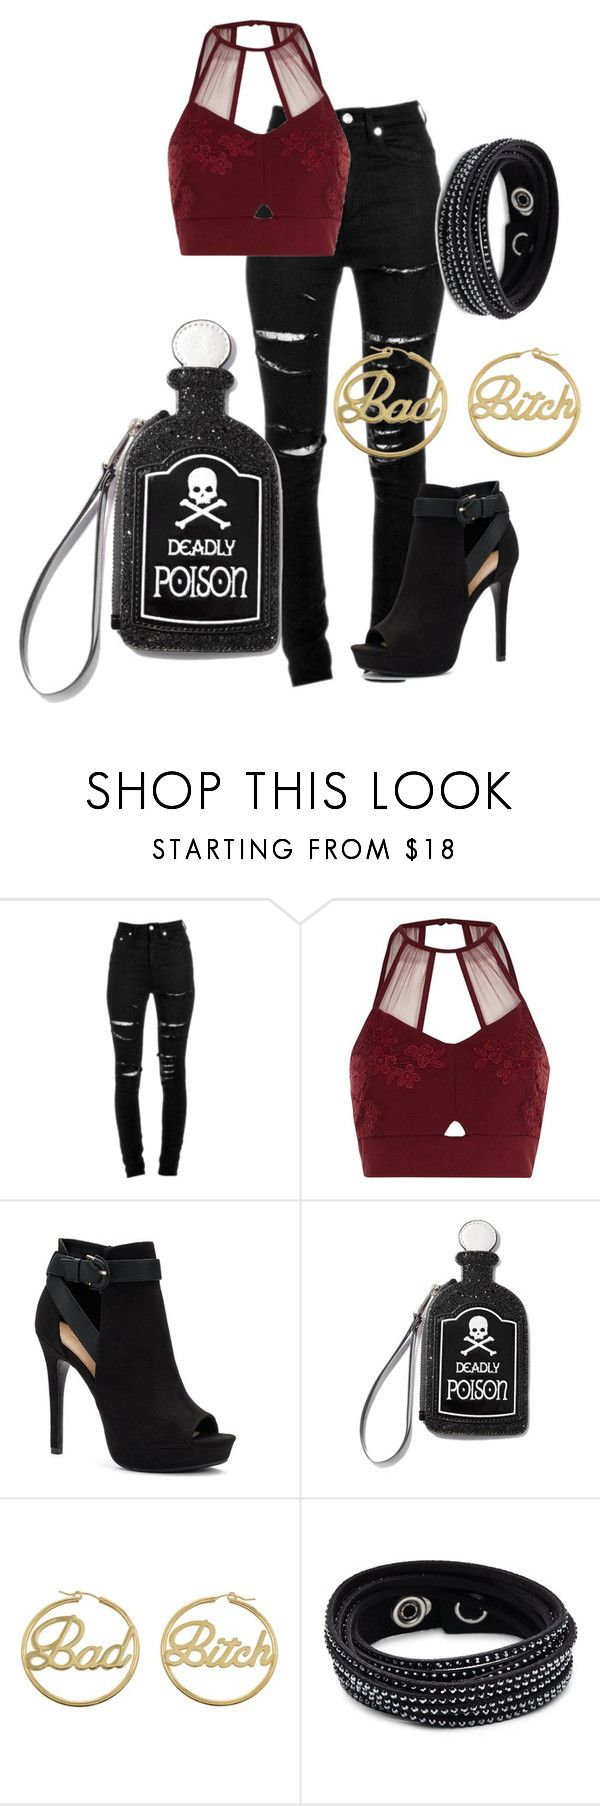 """Night out"" by caitlintol on Polyvore featuring Yves Saint Laurent, River Island, Apt. 9, Current Mood, me you and Swarovski"